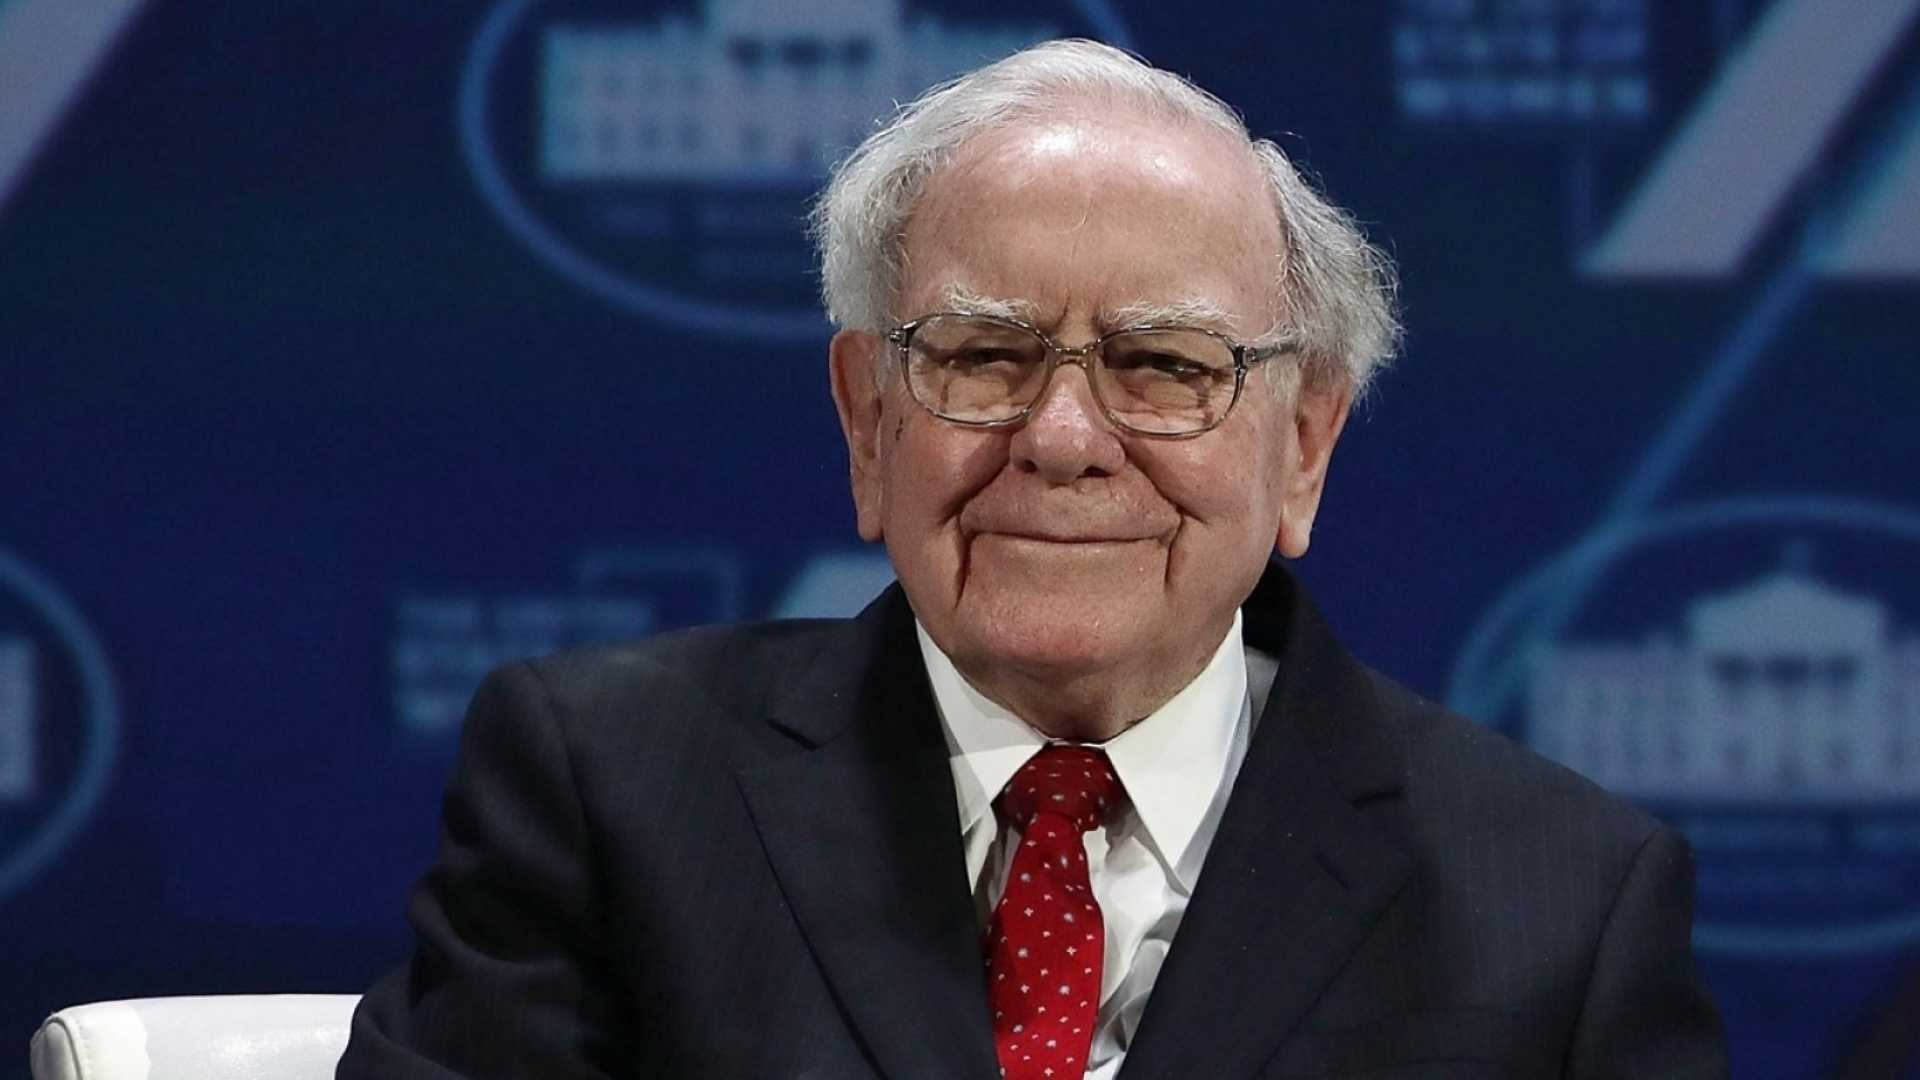 5 Really Important Things Warren Buffett Wants You to Know About the Economy